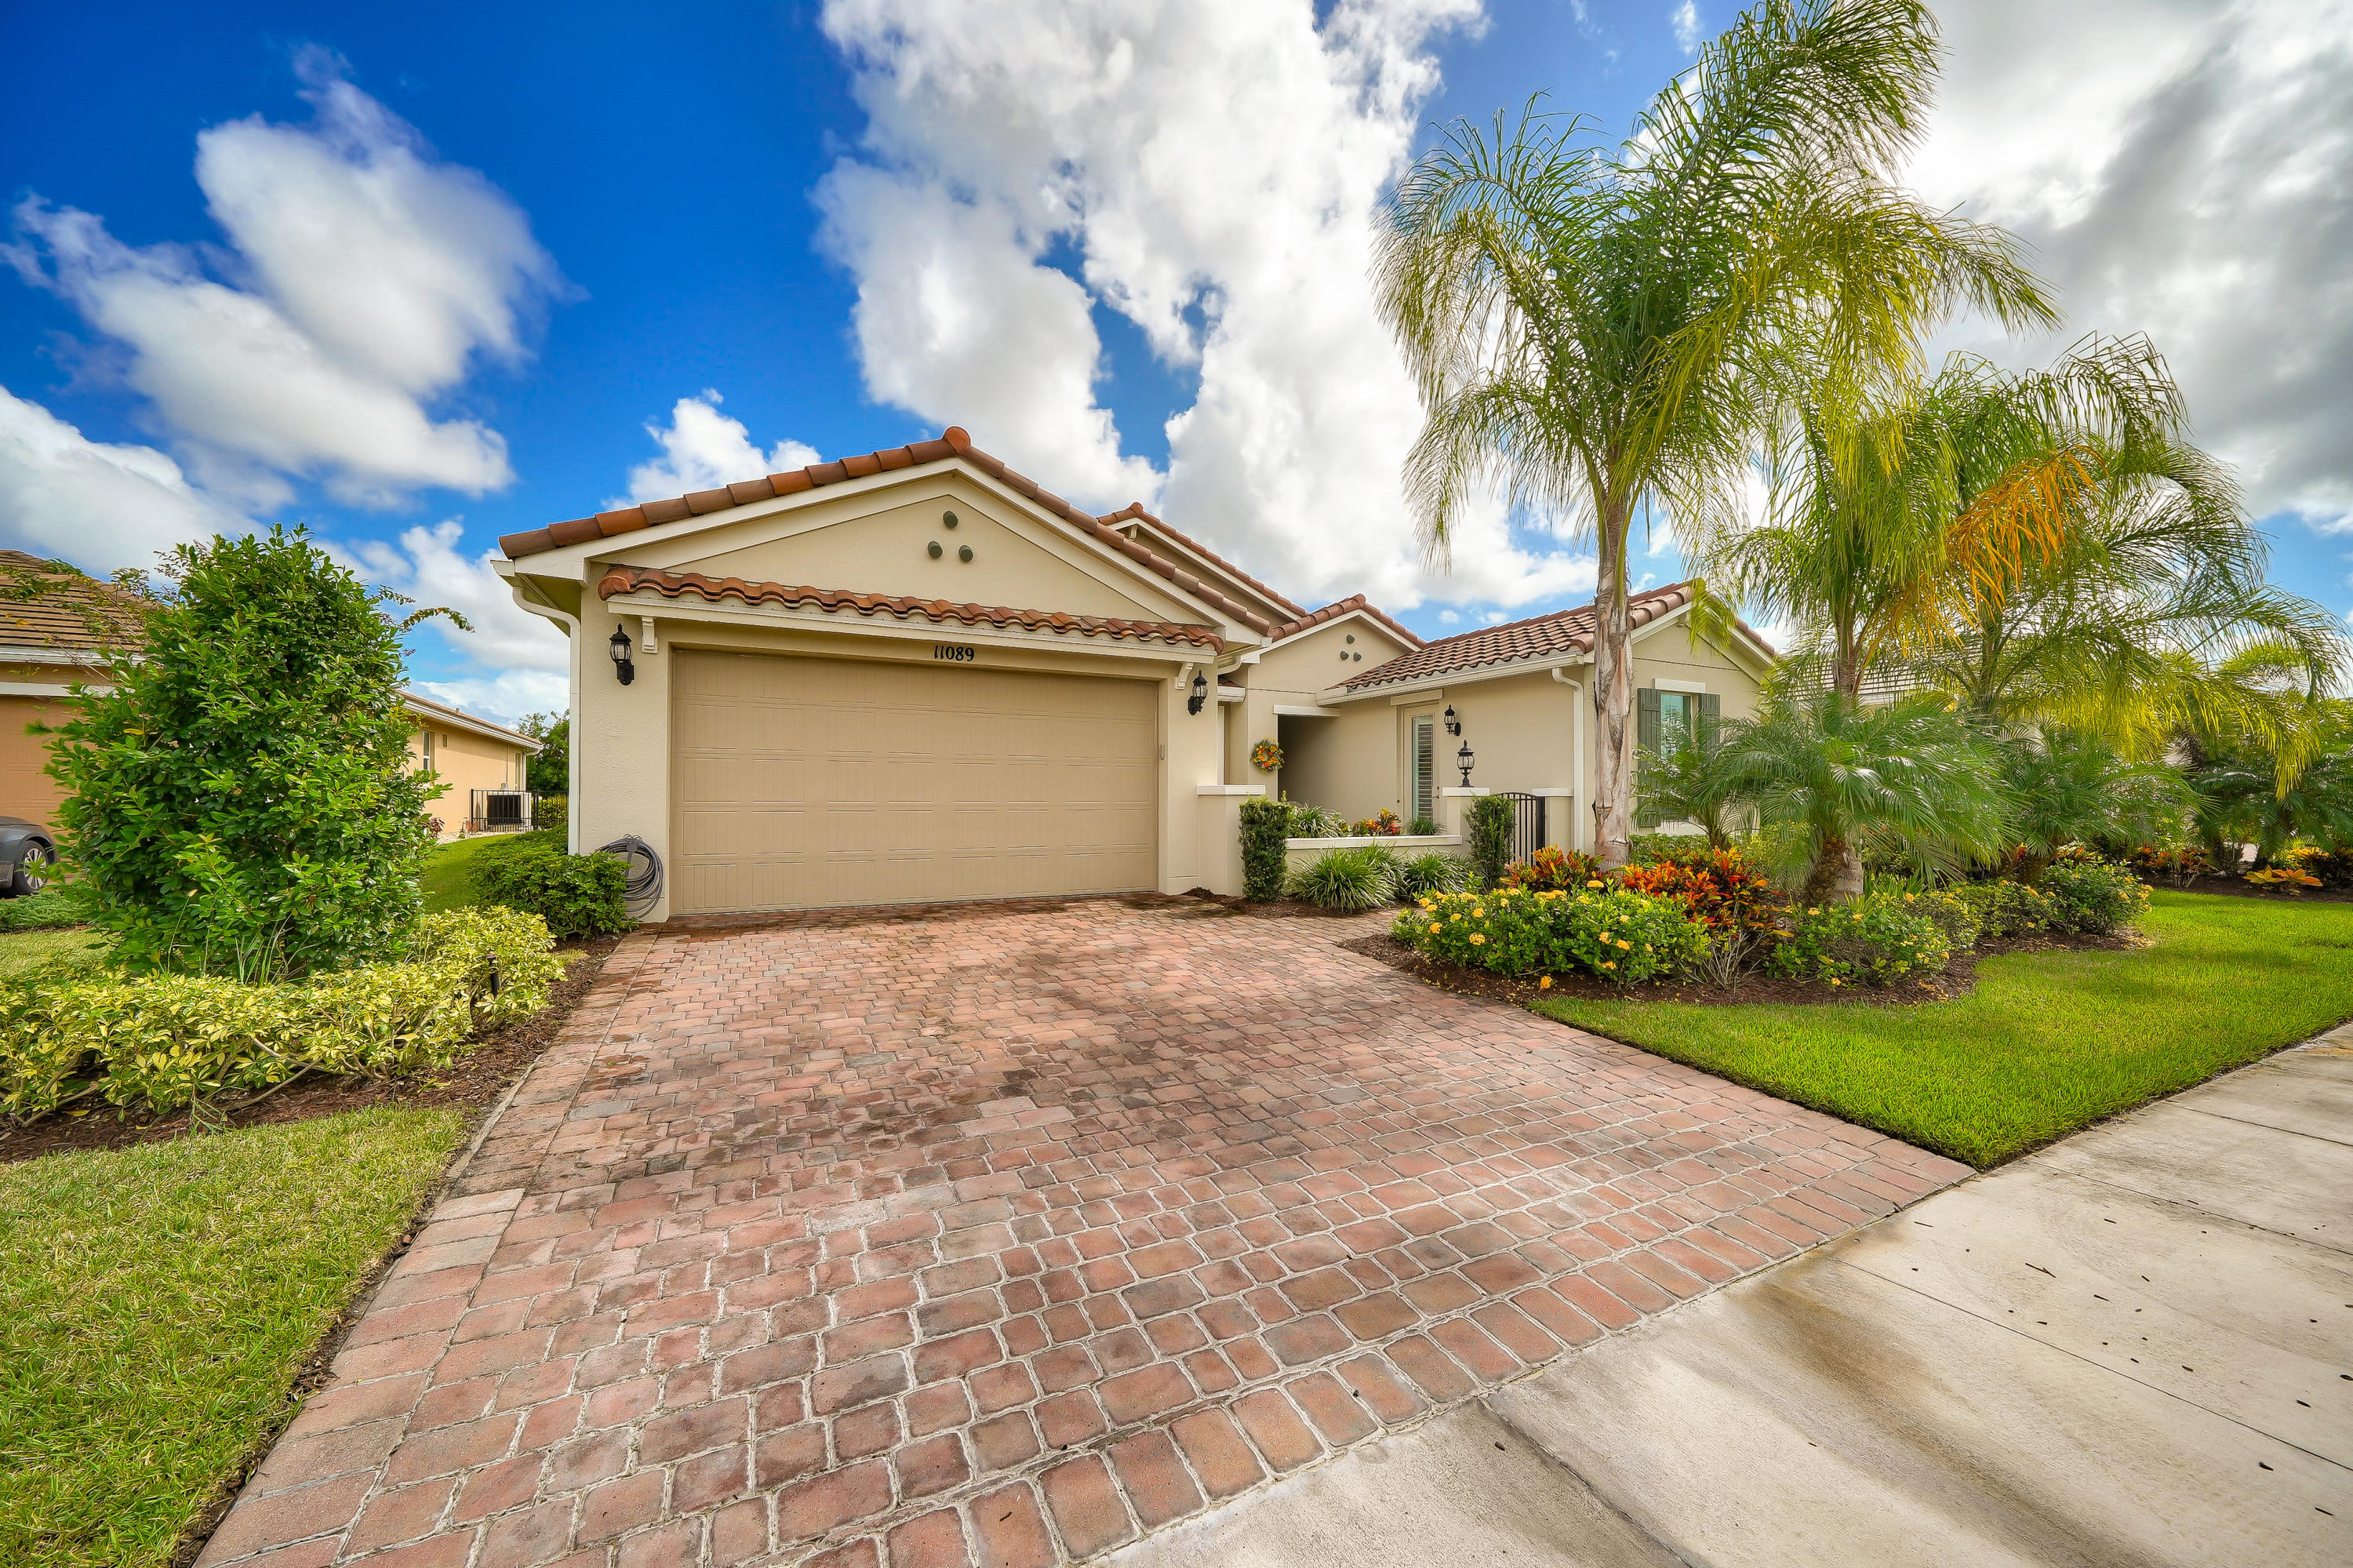 Details for 11089 Rose Apple Court Sw, Port Saint Lucie, FL 34987